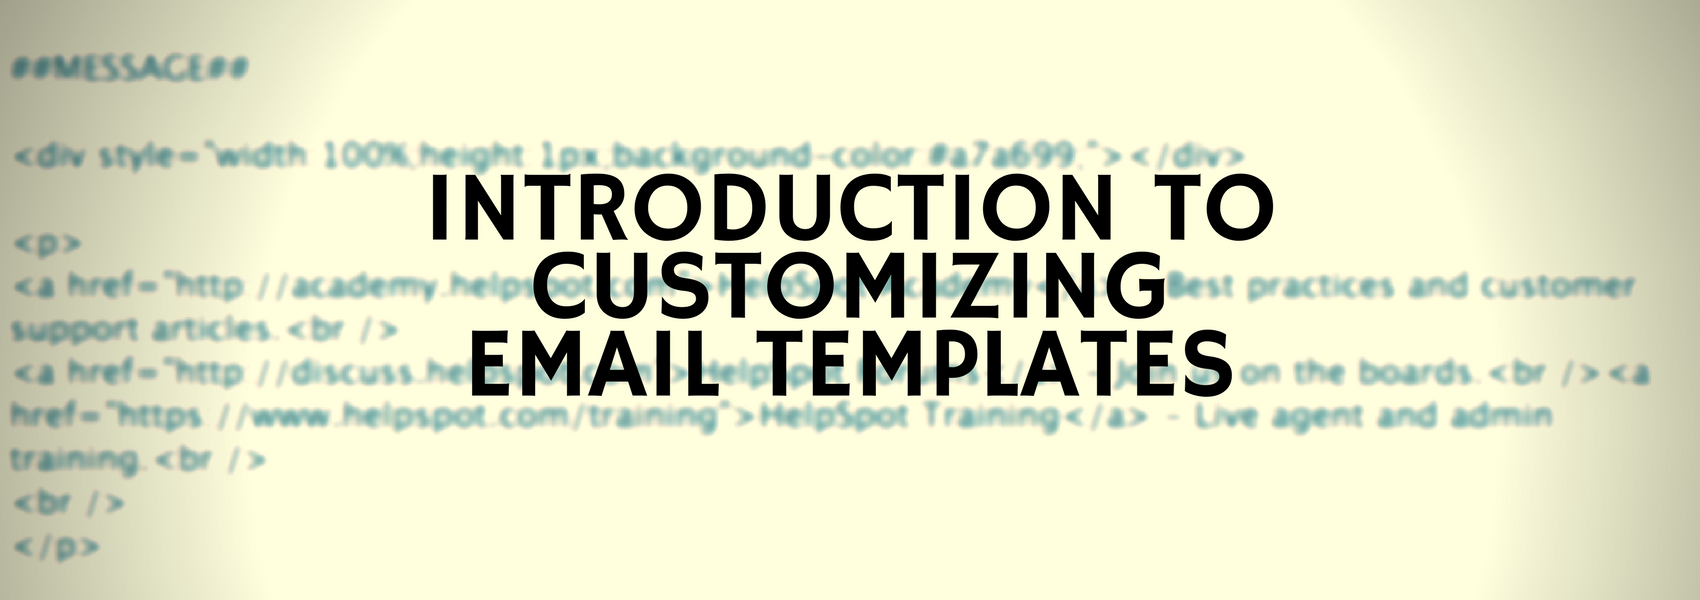 email introduction templates